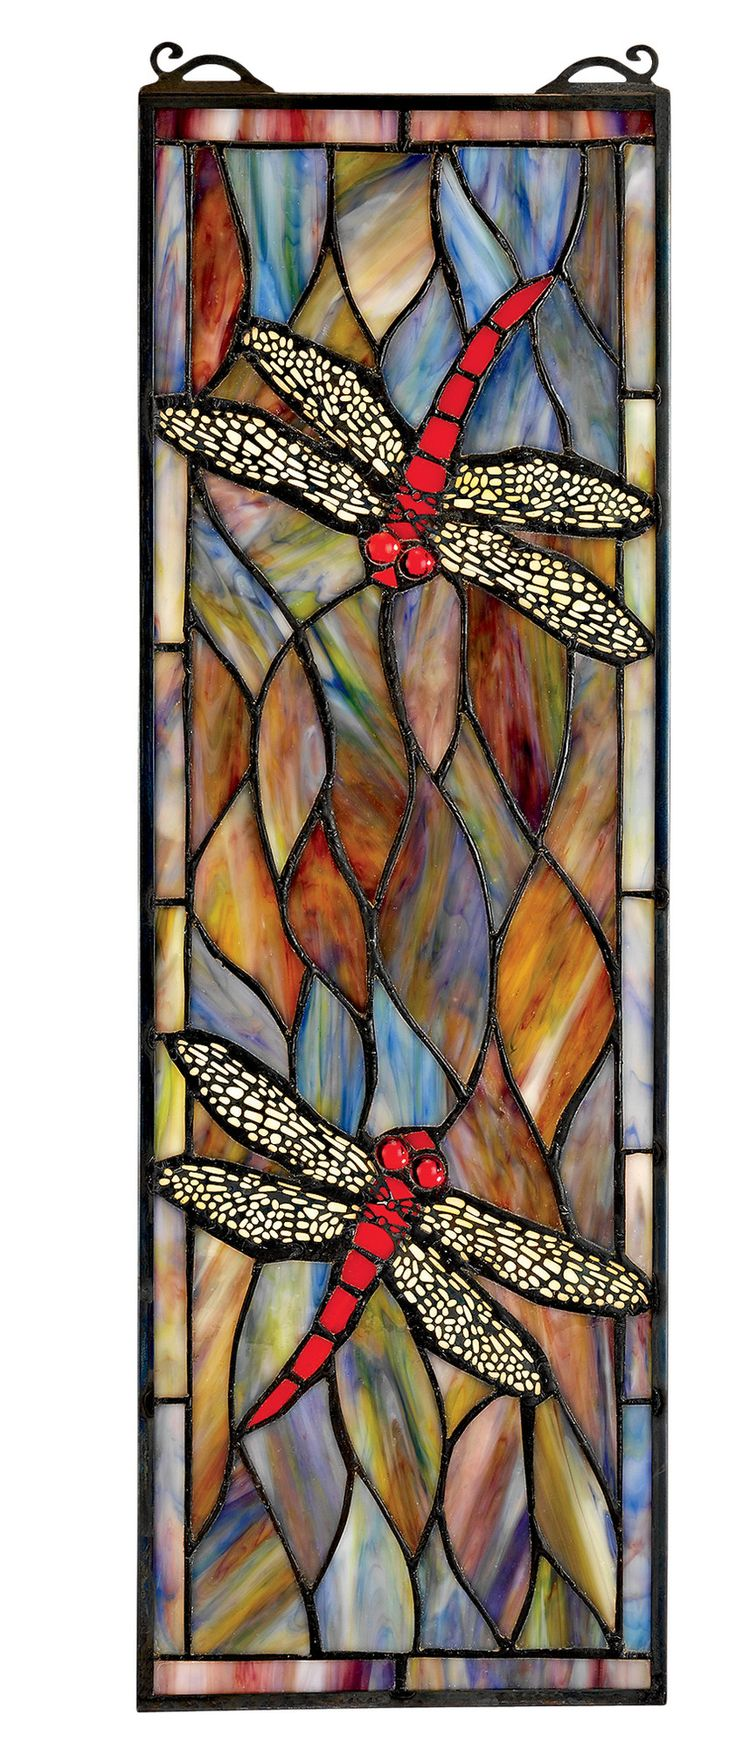 Tiffany Dragonfly Stained Glass Window                                                                                                                                                                                 More